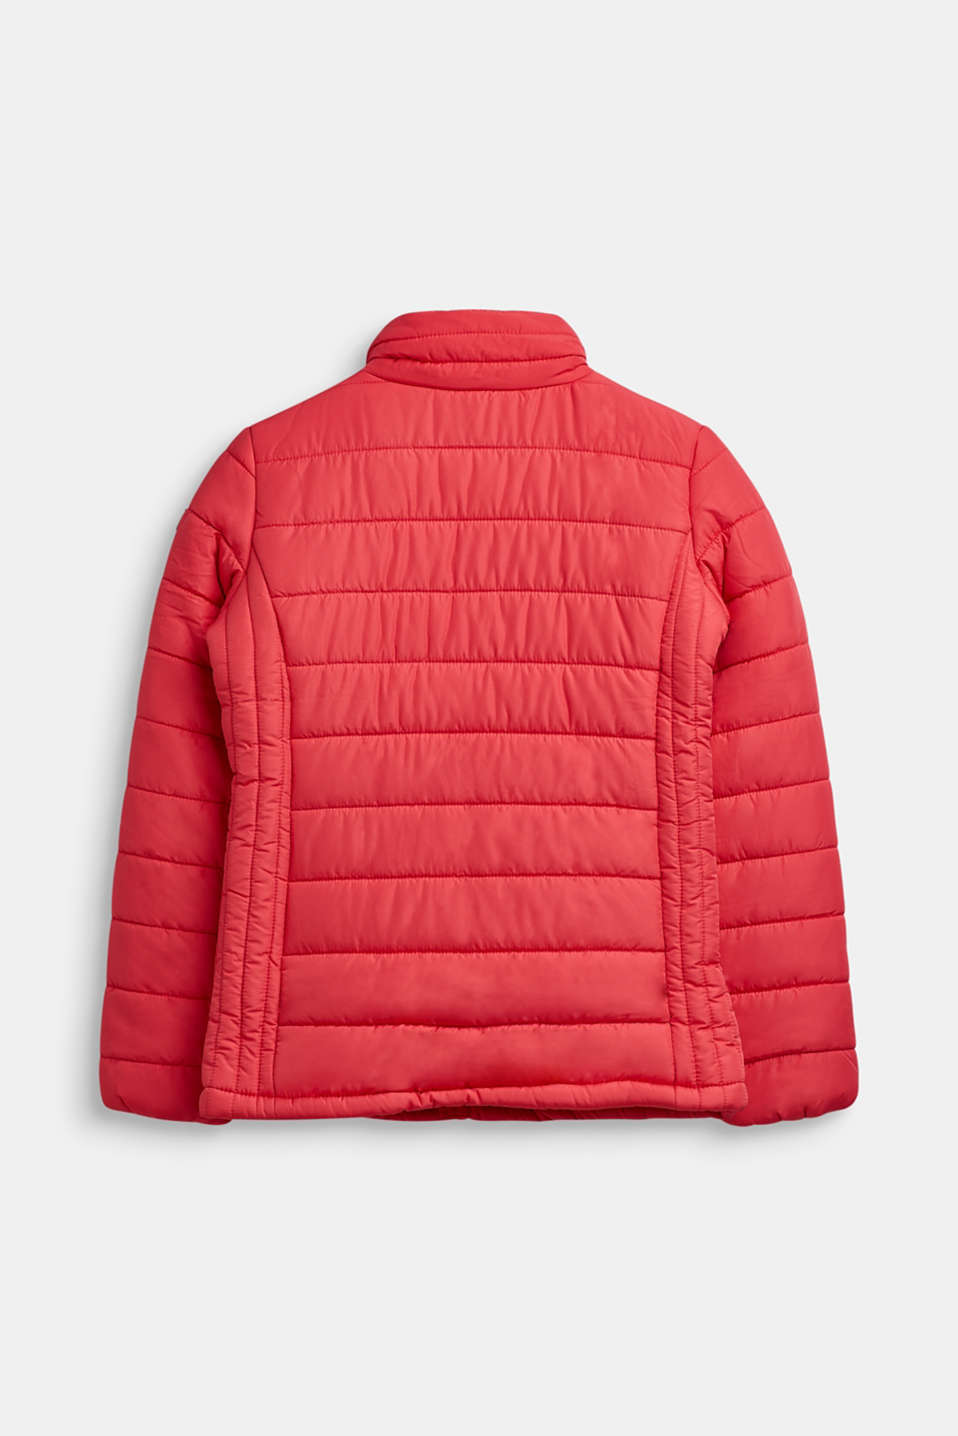 Jackets outdoor woven, LCSTRAWBERRY, detail image number 1